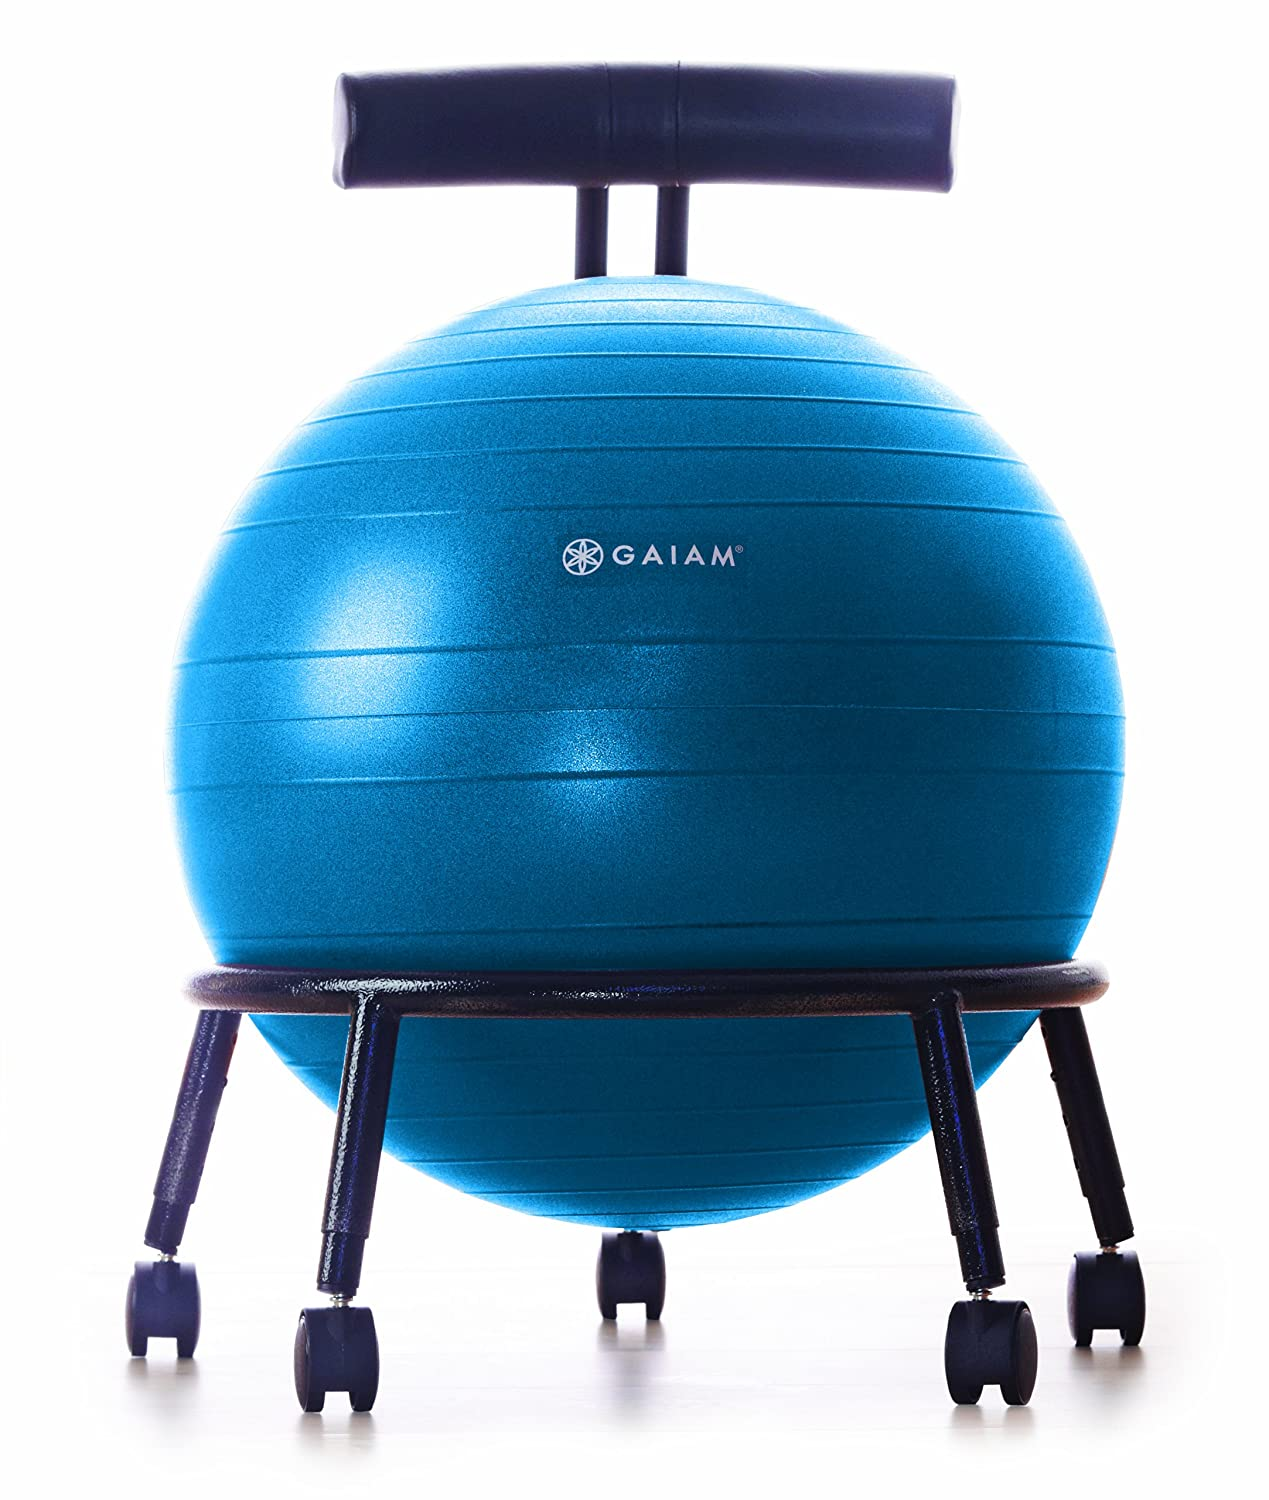 Yoga Ball Desk Chair New Balance Ball Workout Chair Ergonomic Adjustable Desk